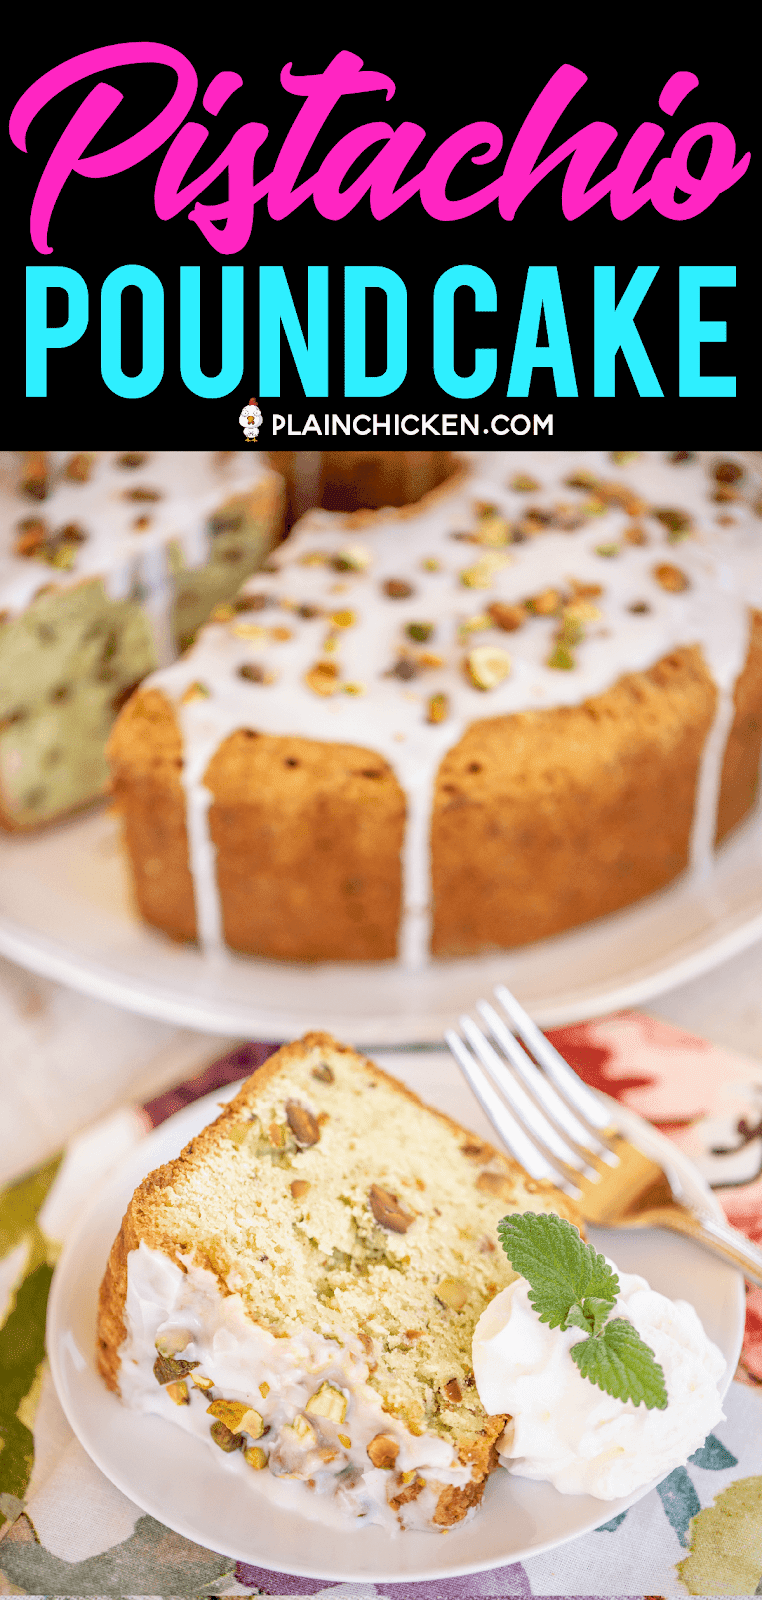 slice of pound cake on a plate with cake in background